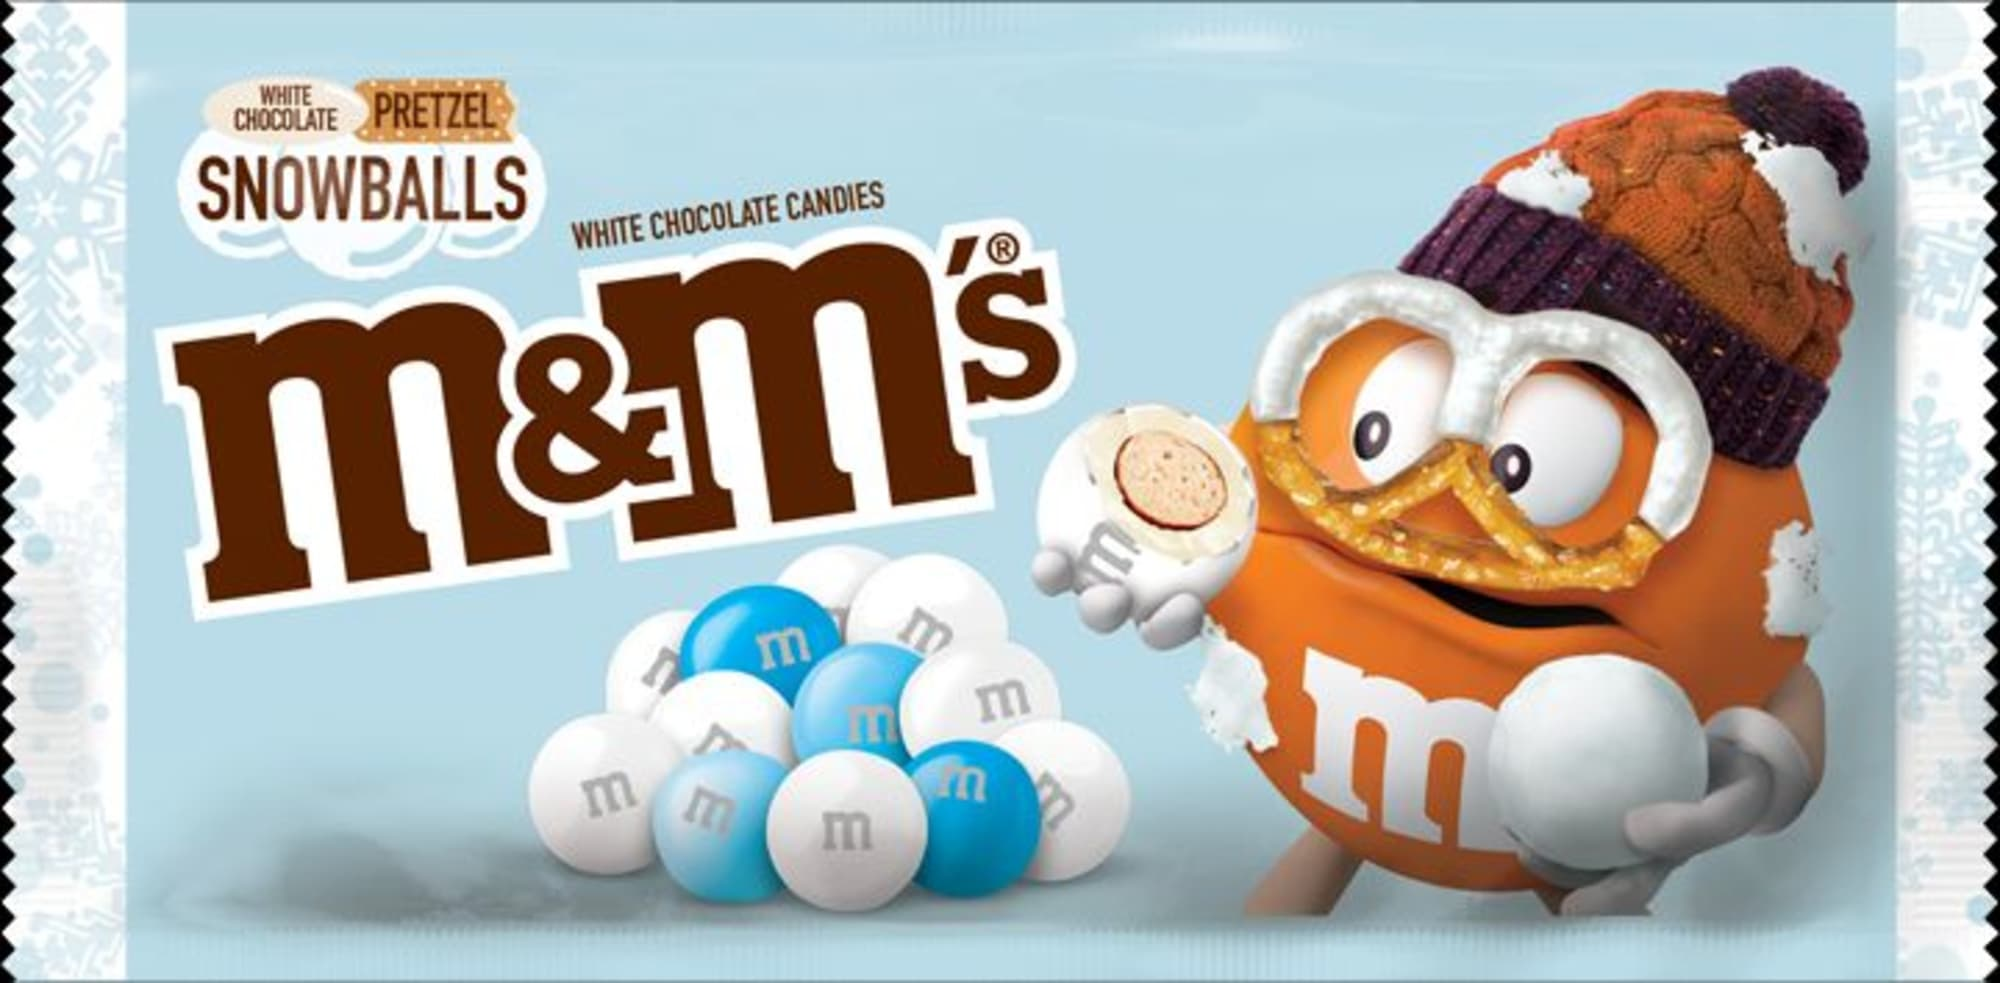 M&M's White Chocolate Pretzel Snowballs will be the holiday candy hit